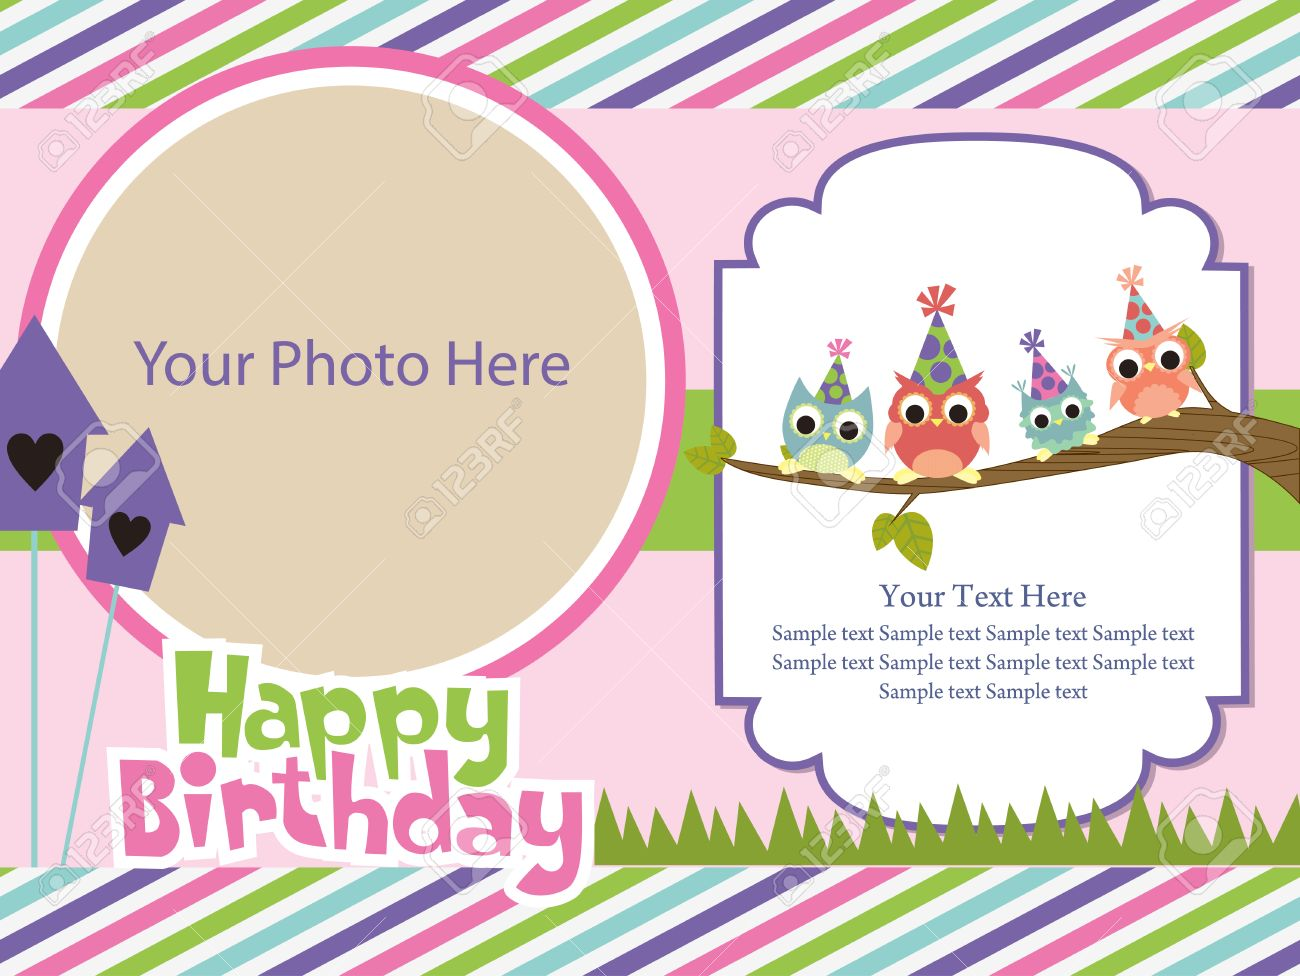 happy birthday invitation card design ; 26903663-happy-birthday-invitation-card-design-vector-illustration